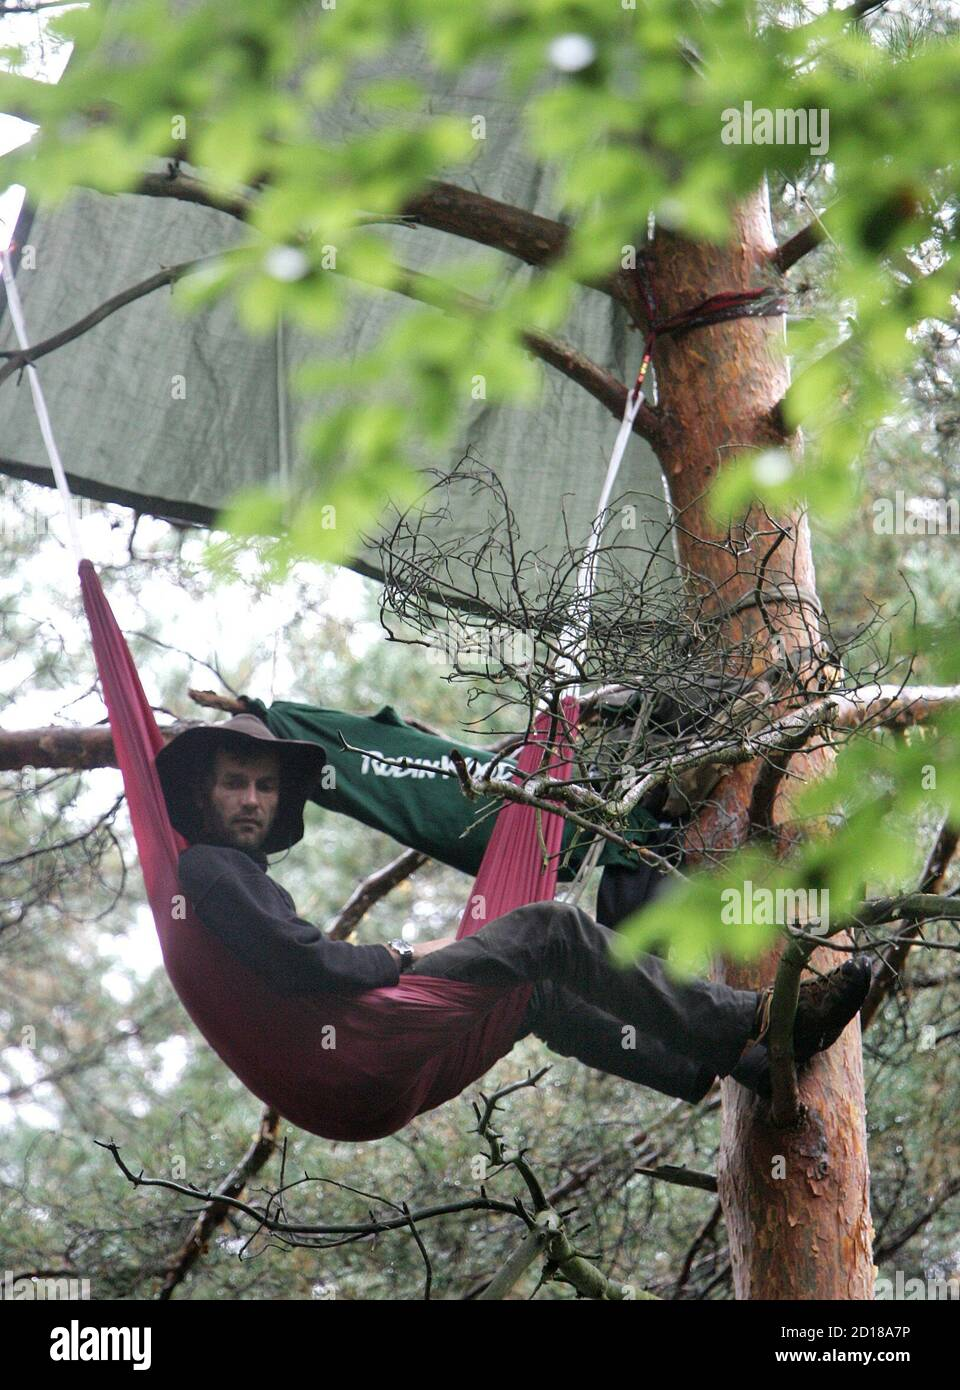 """An activist from the environmental organisation """"Robin Wood"""" sits in a tree in a sealed-off forest area called """"Bannwald"""" as construction works on a new runway near Frankfurt's Rhine-Main airport started September 11, 2005. Police expect protesters and environmental activists against the extension of the airport.  vk/TY Stock Photo"""